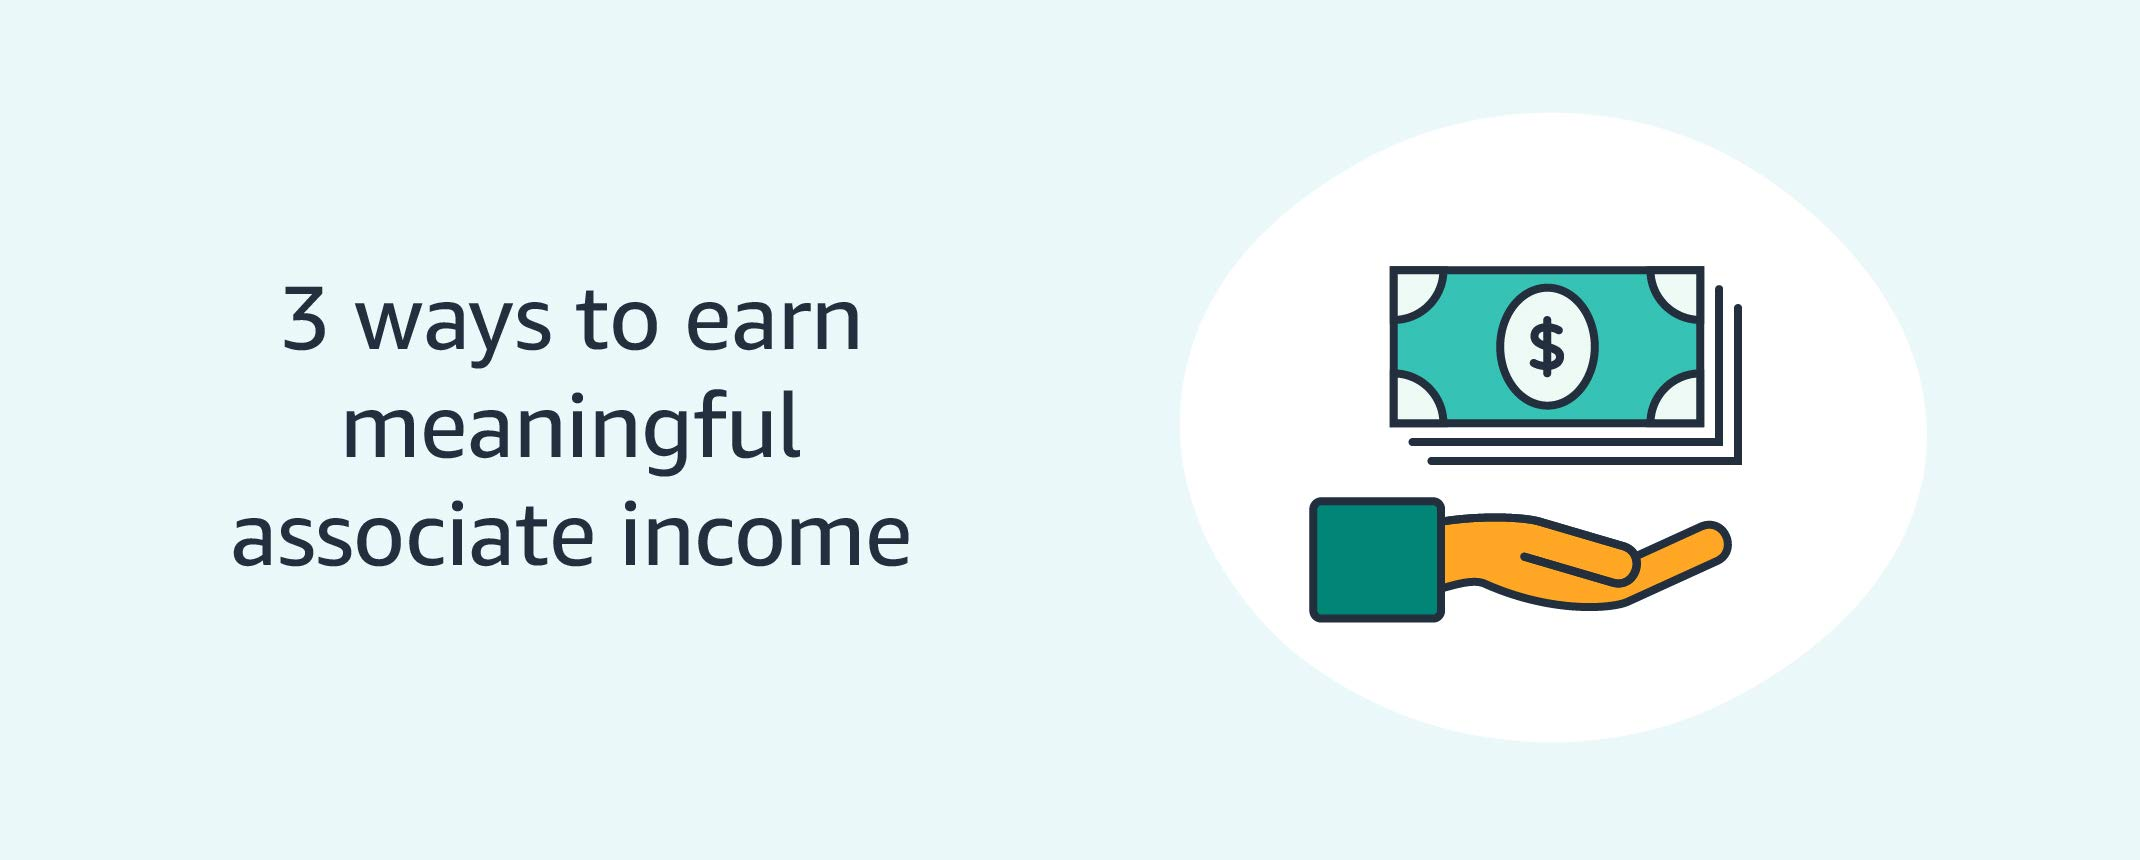 3 ways to earn meaningful associate income